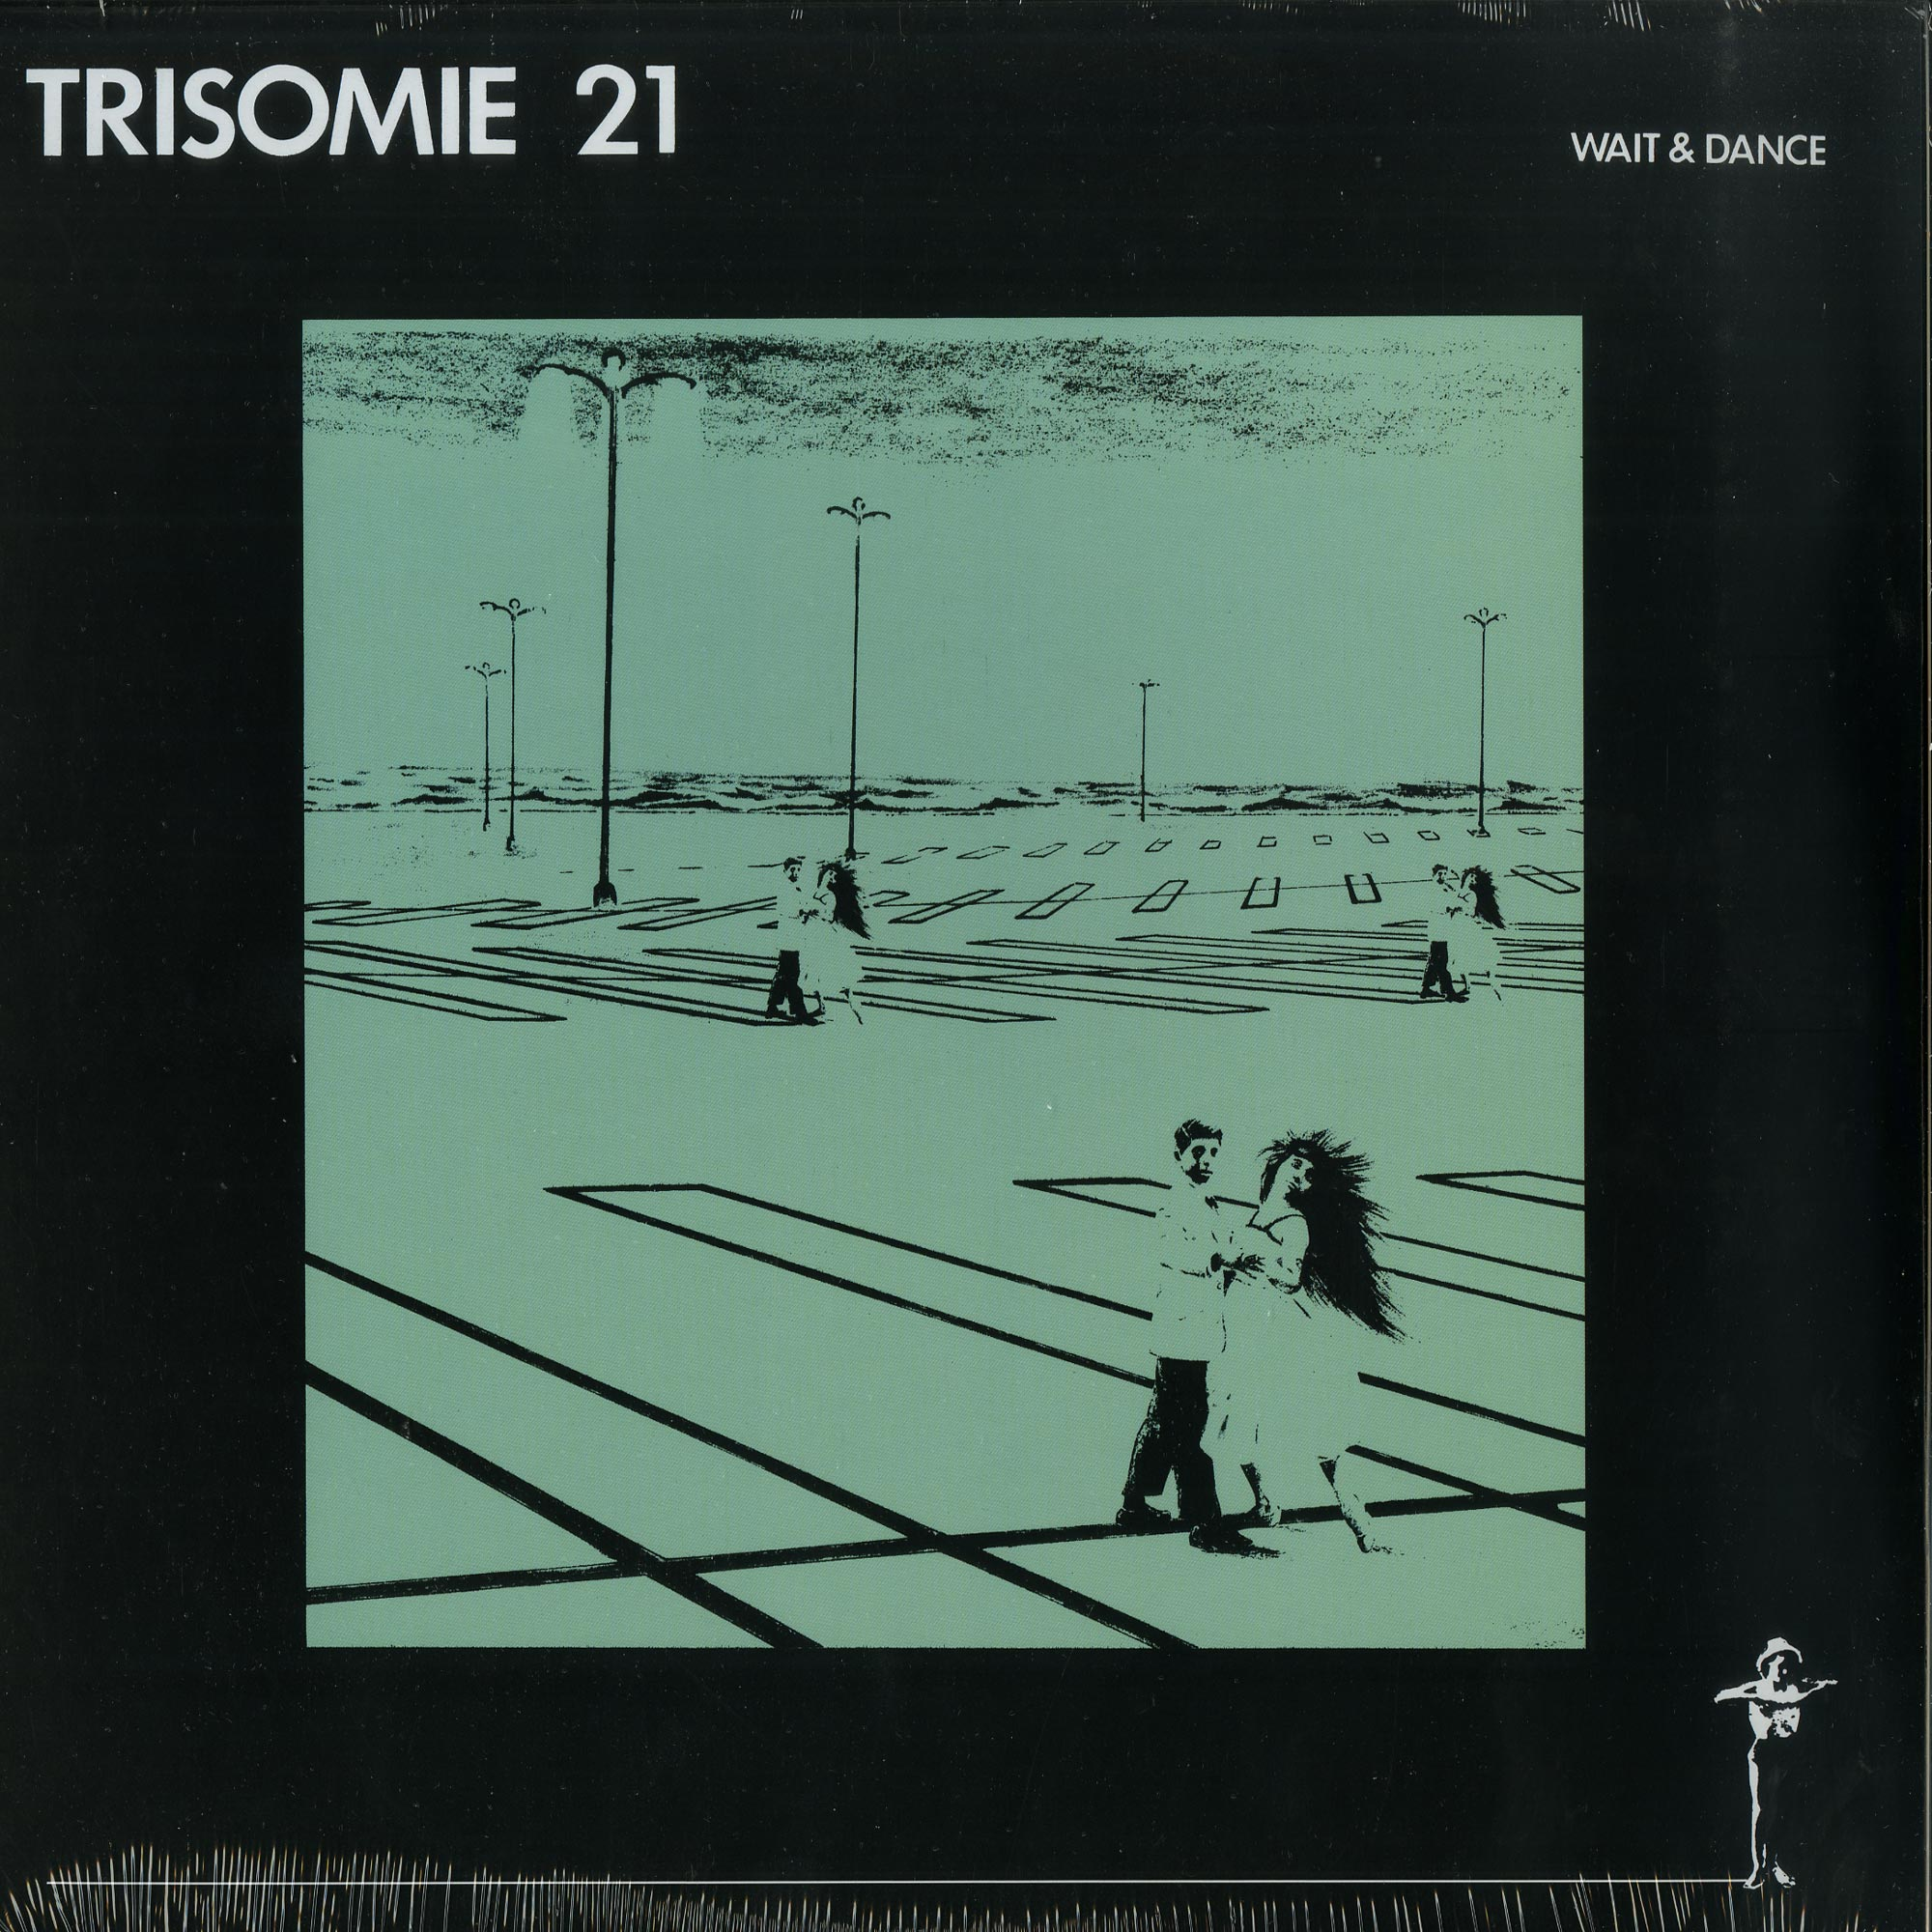 Trisomie 21 - WAIT AND DANCE